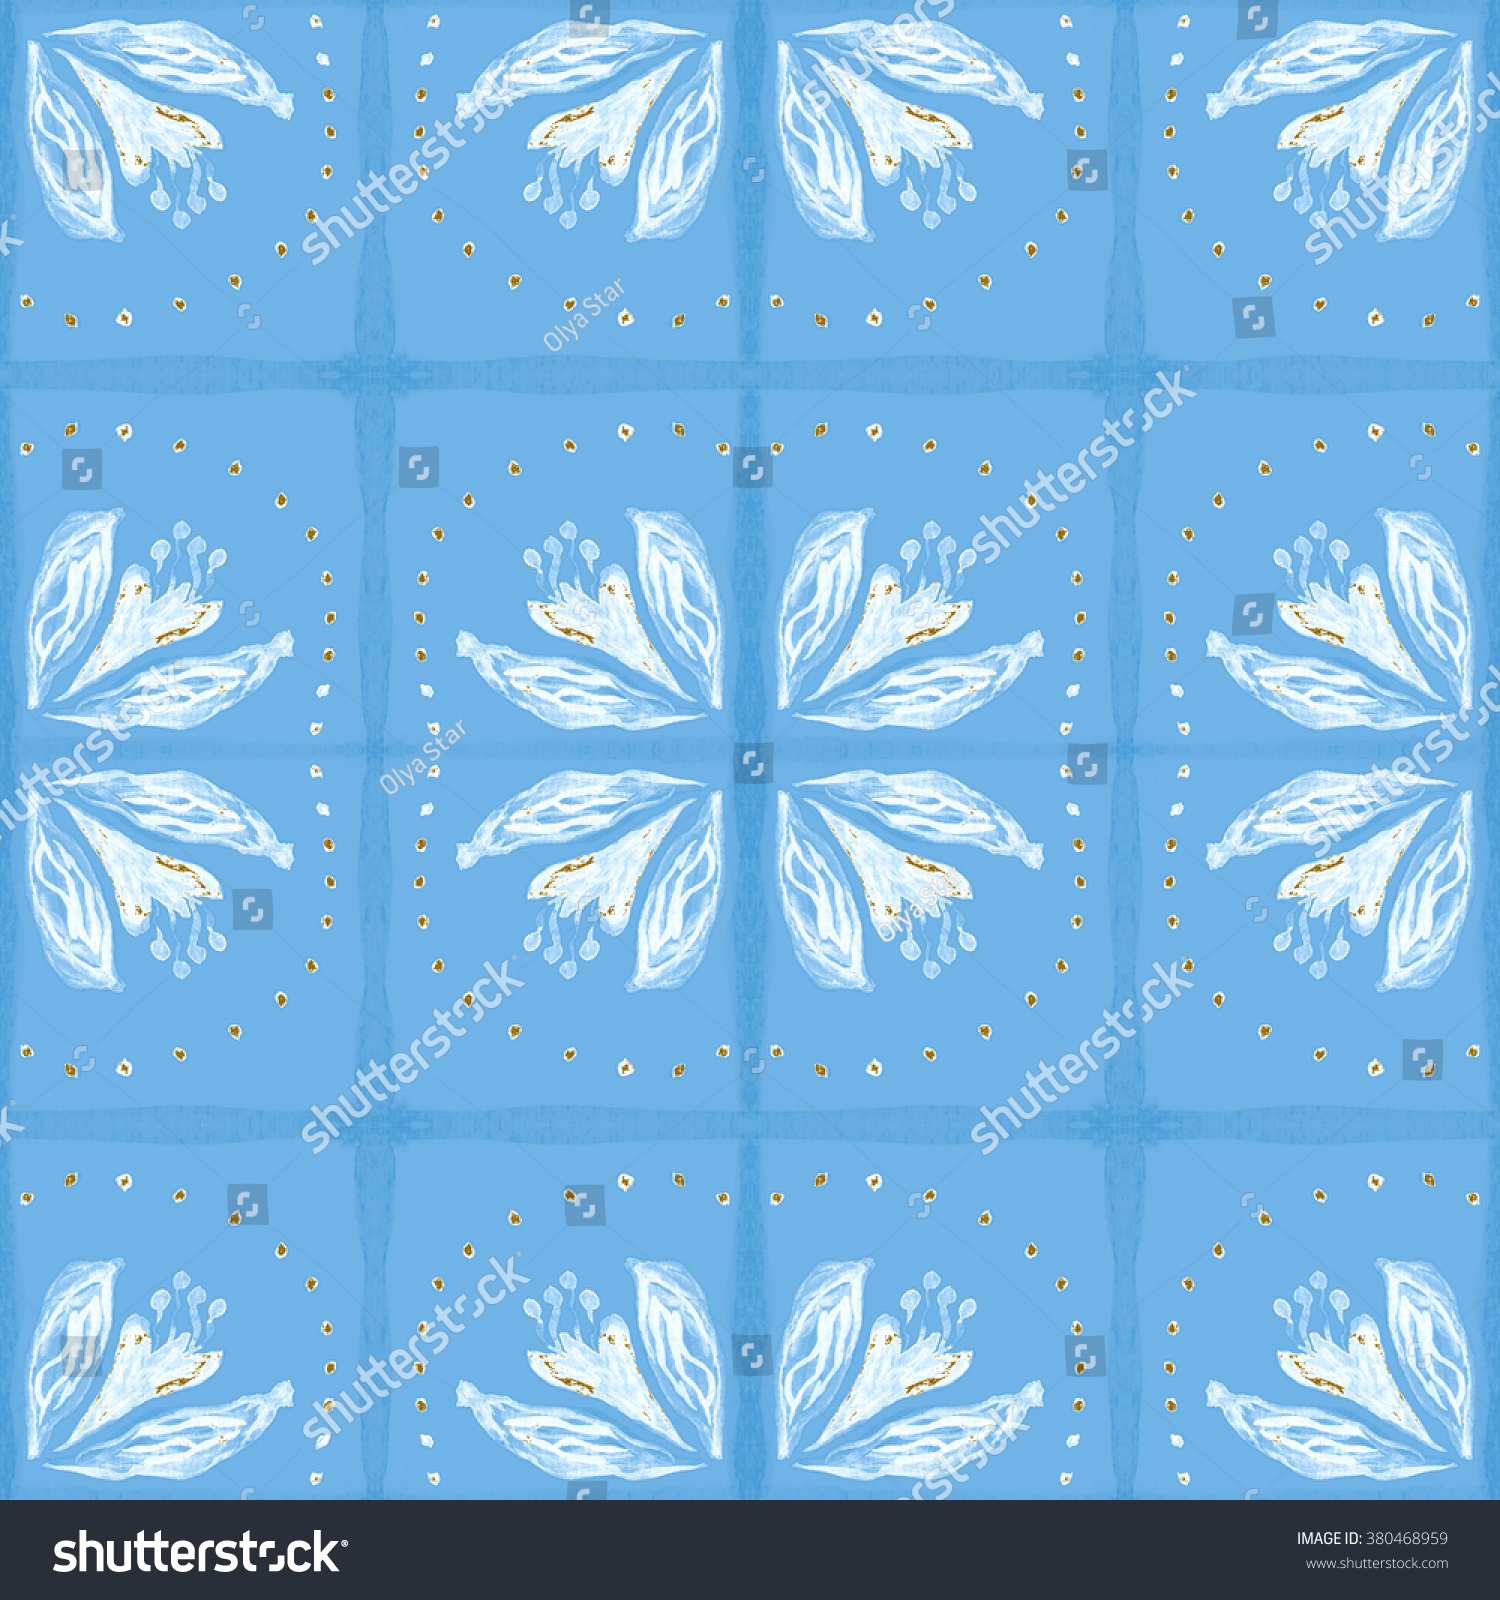 Tile pattern art Floral pattern Tile pattern Flower pattern Tile pattern flower